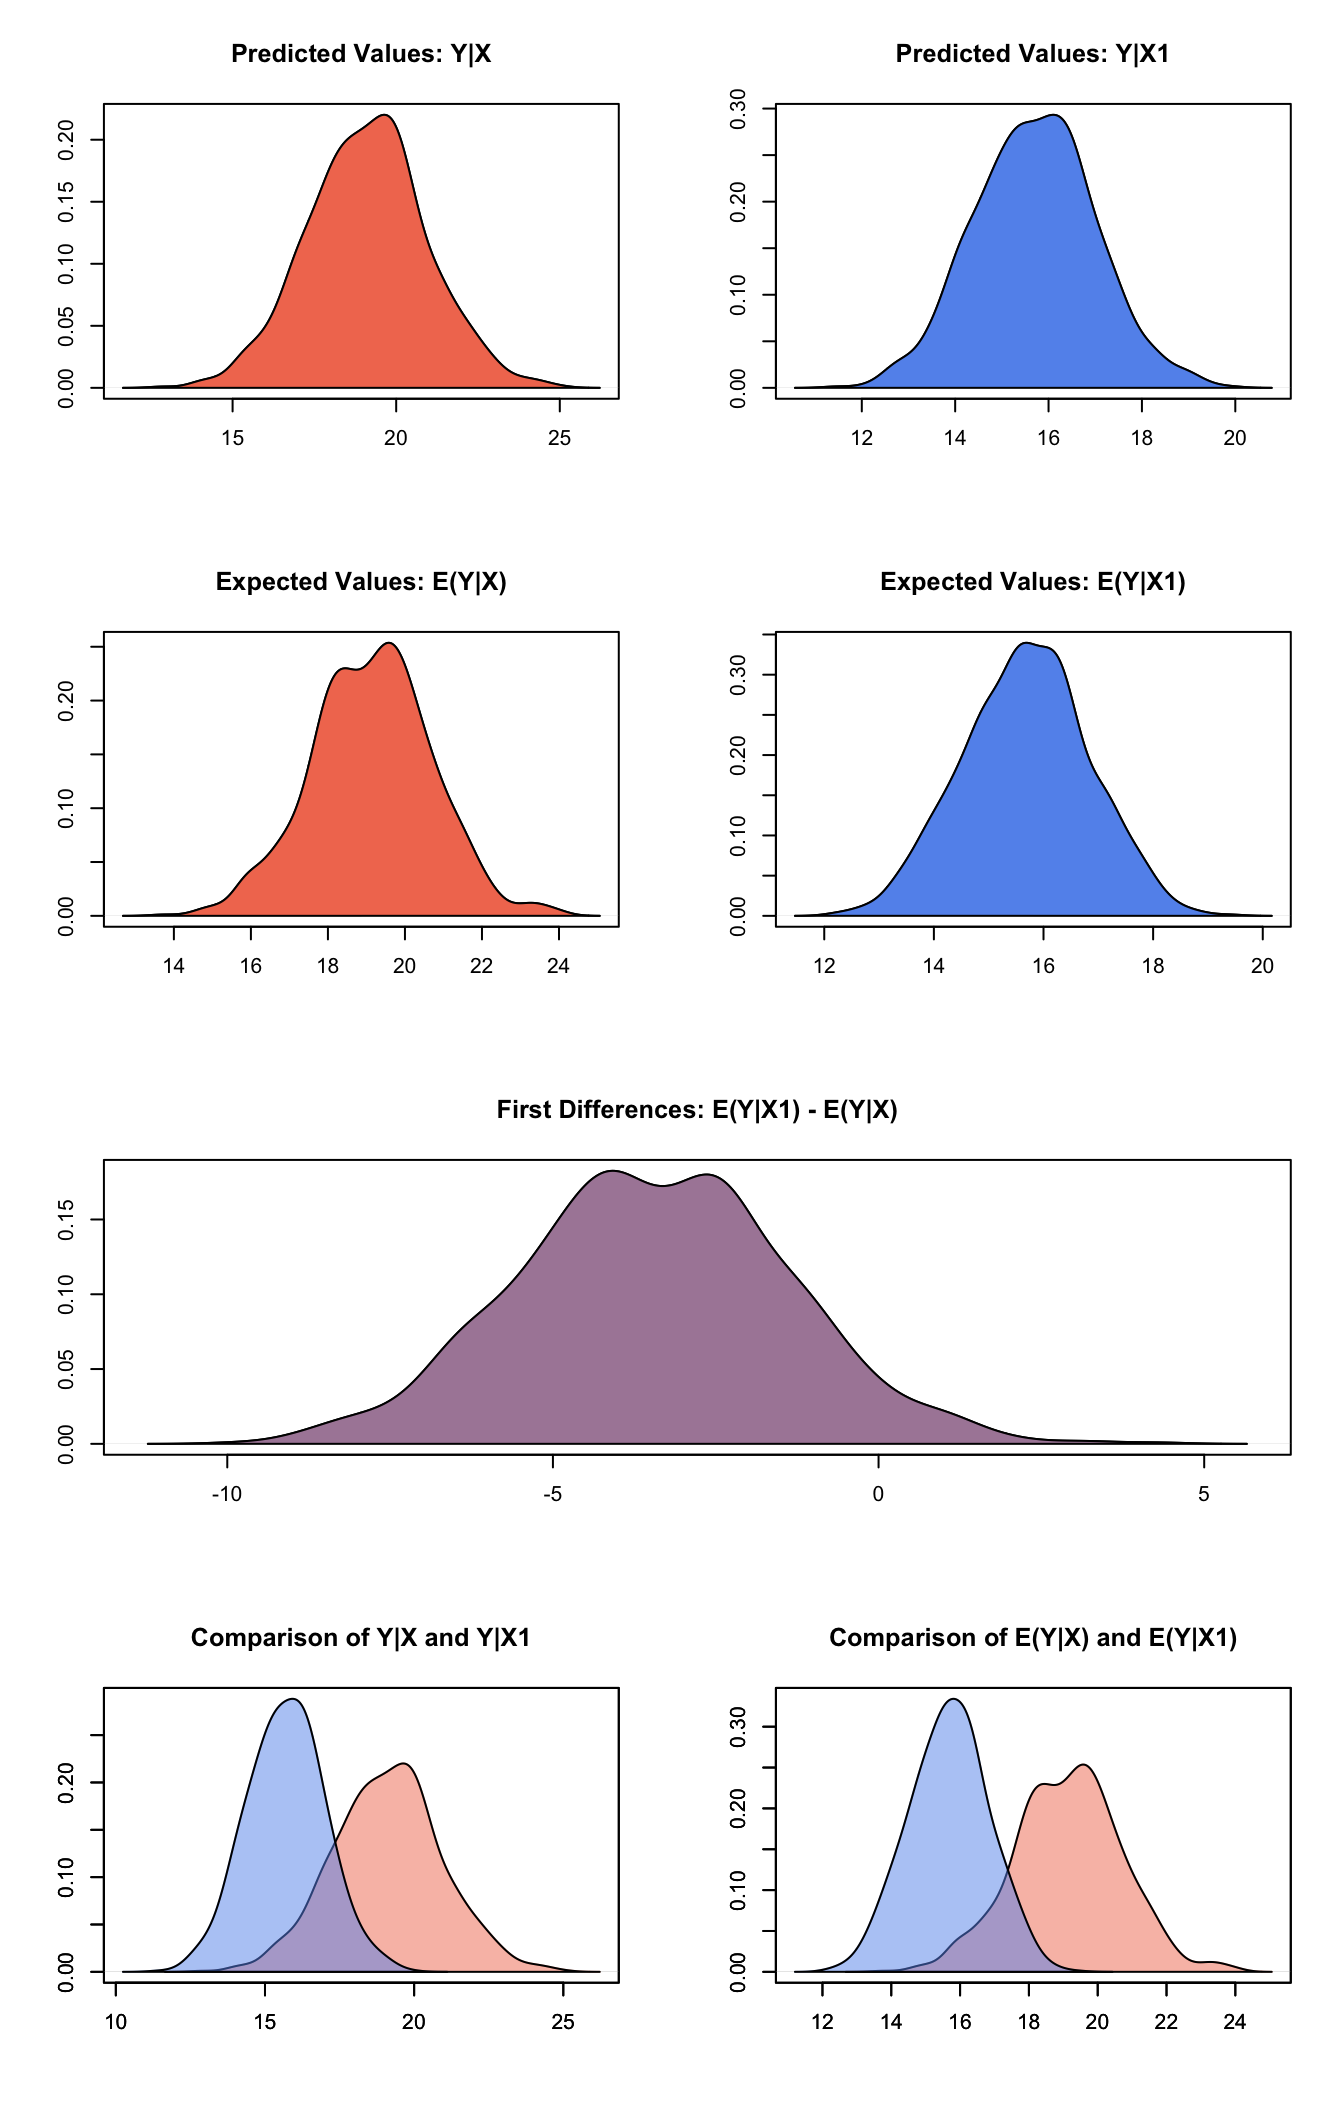 Graphs Of Quantities Of Interest For Quantile Regression